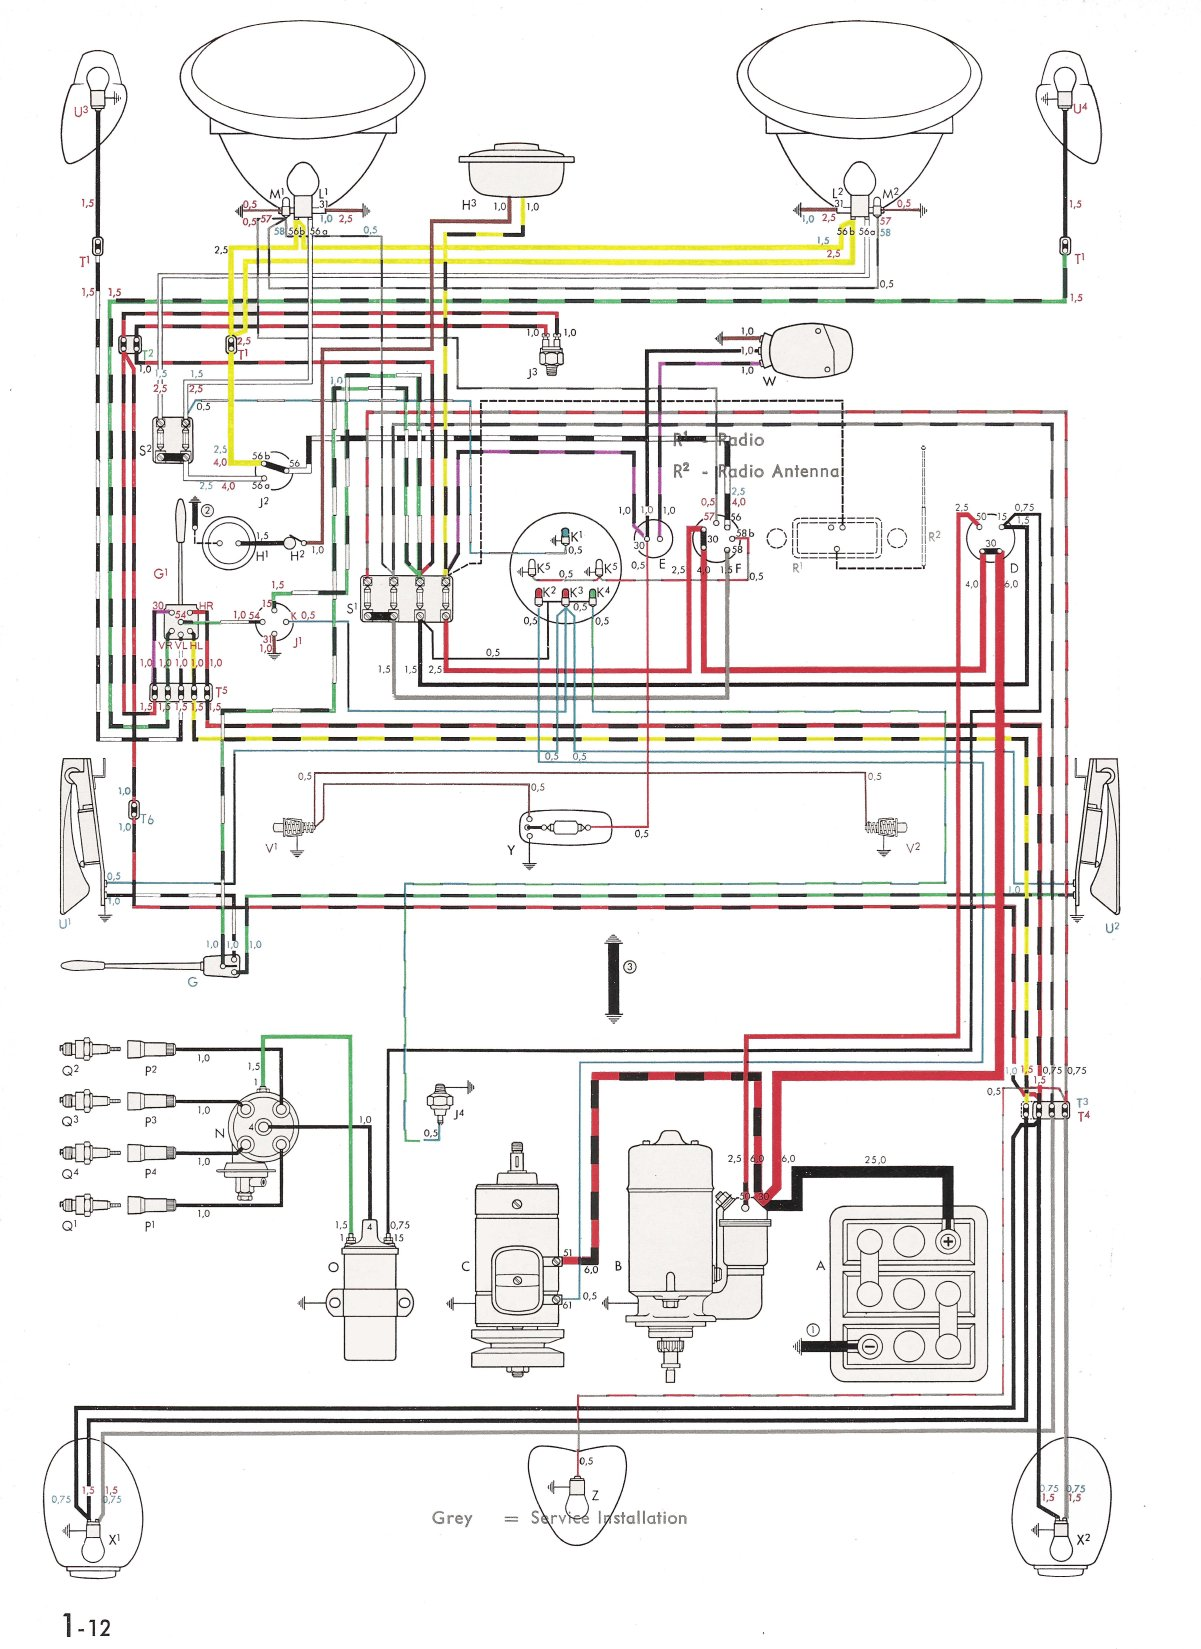 Vw Wiring Diagrams Harness Schematics Stroke Engine Carburetor Diagram Free Download Thesamba Com Type 1 Rh 1600 Air Cooled Symbols